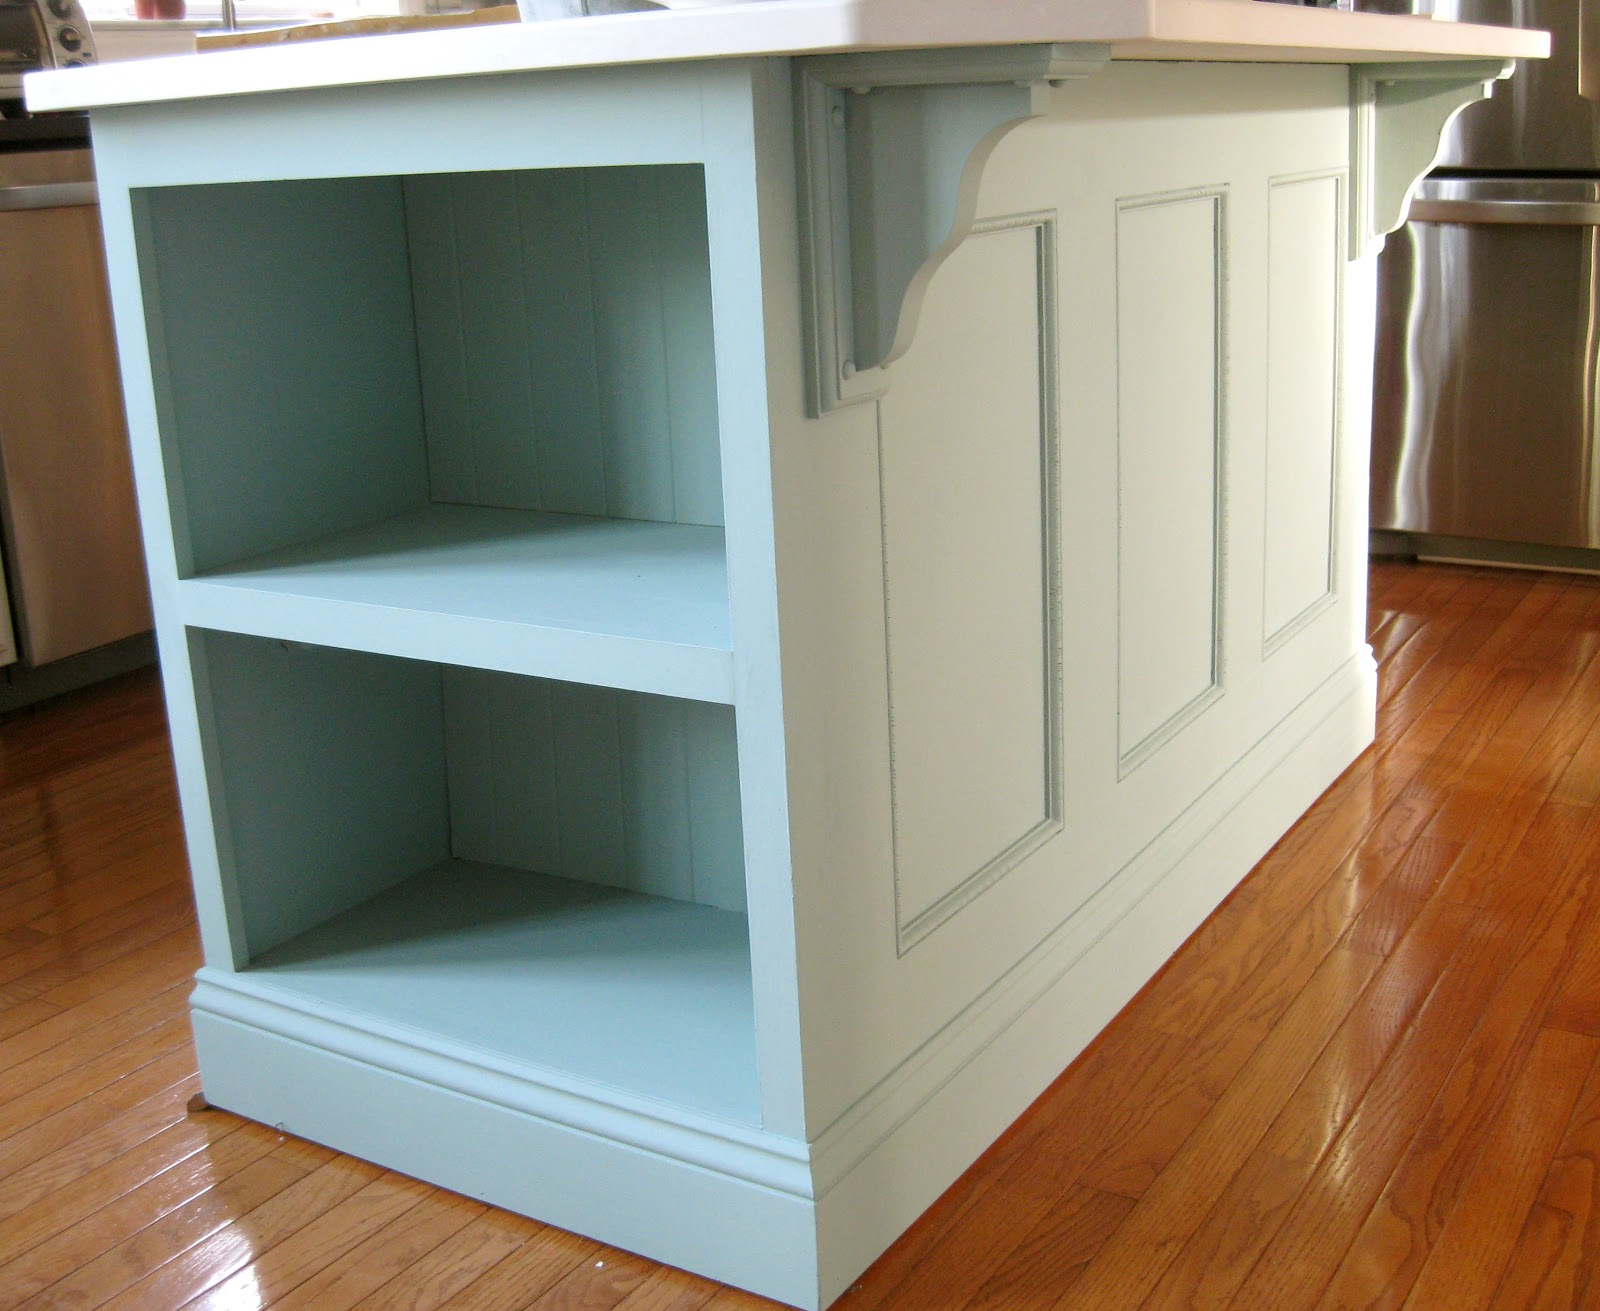 remodelando la casa kitchen island painted ascp duck egg blue two coats of chalk paint on kitchen island